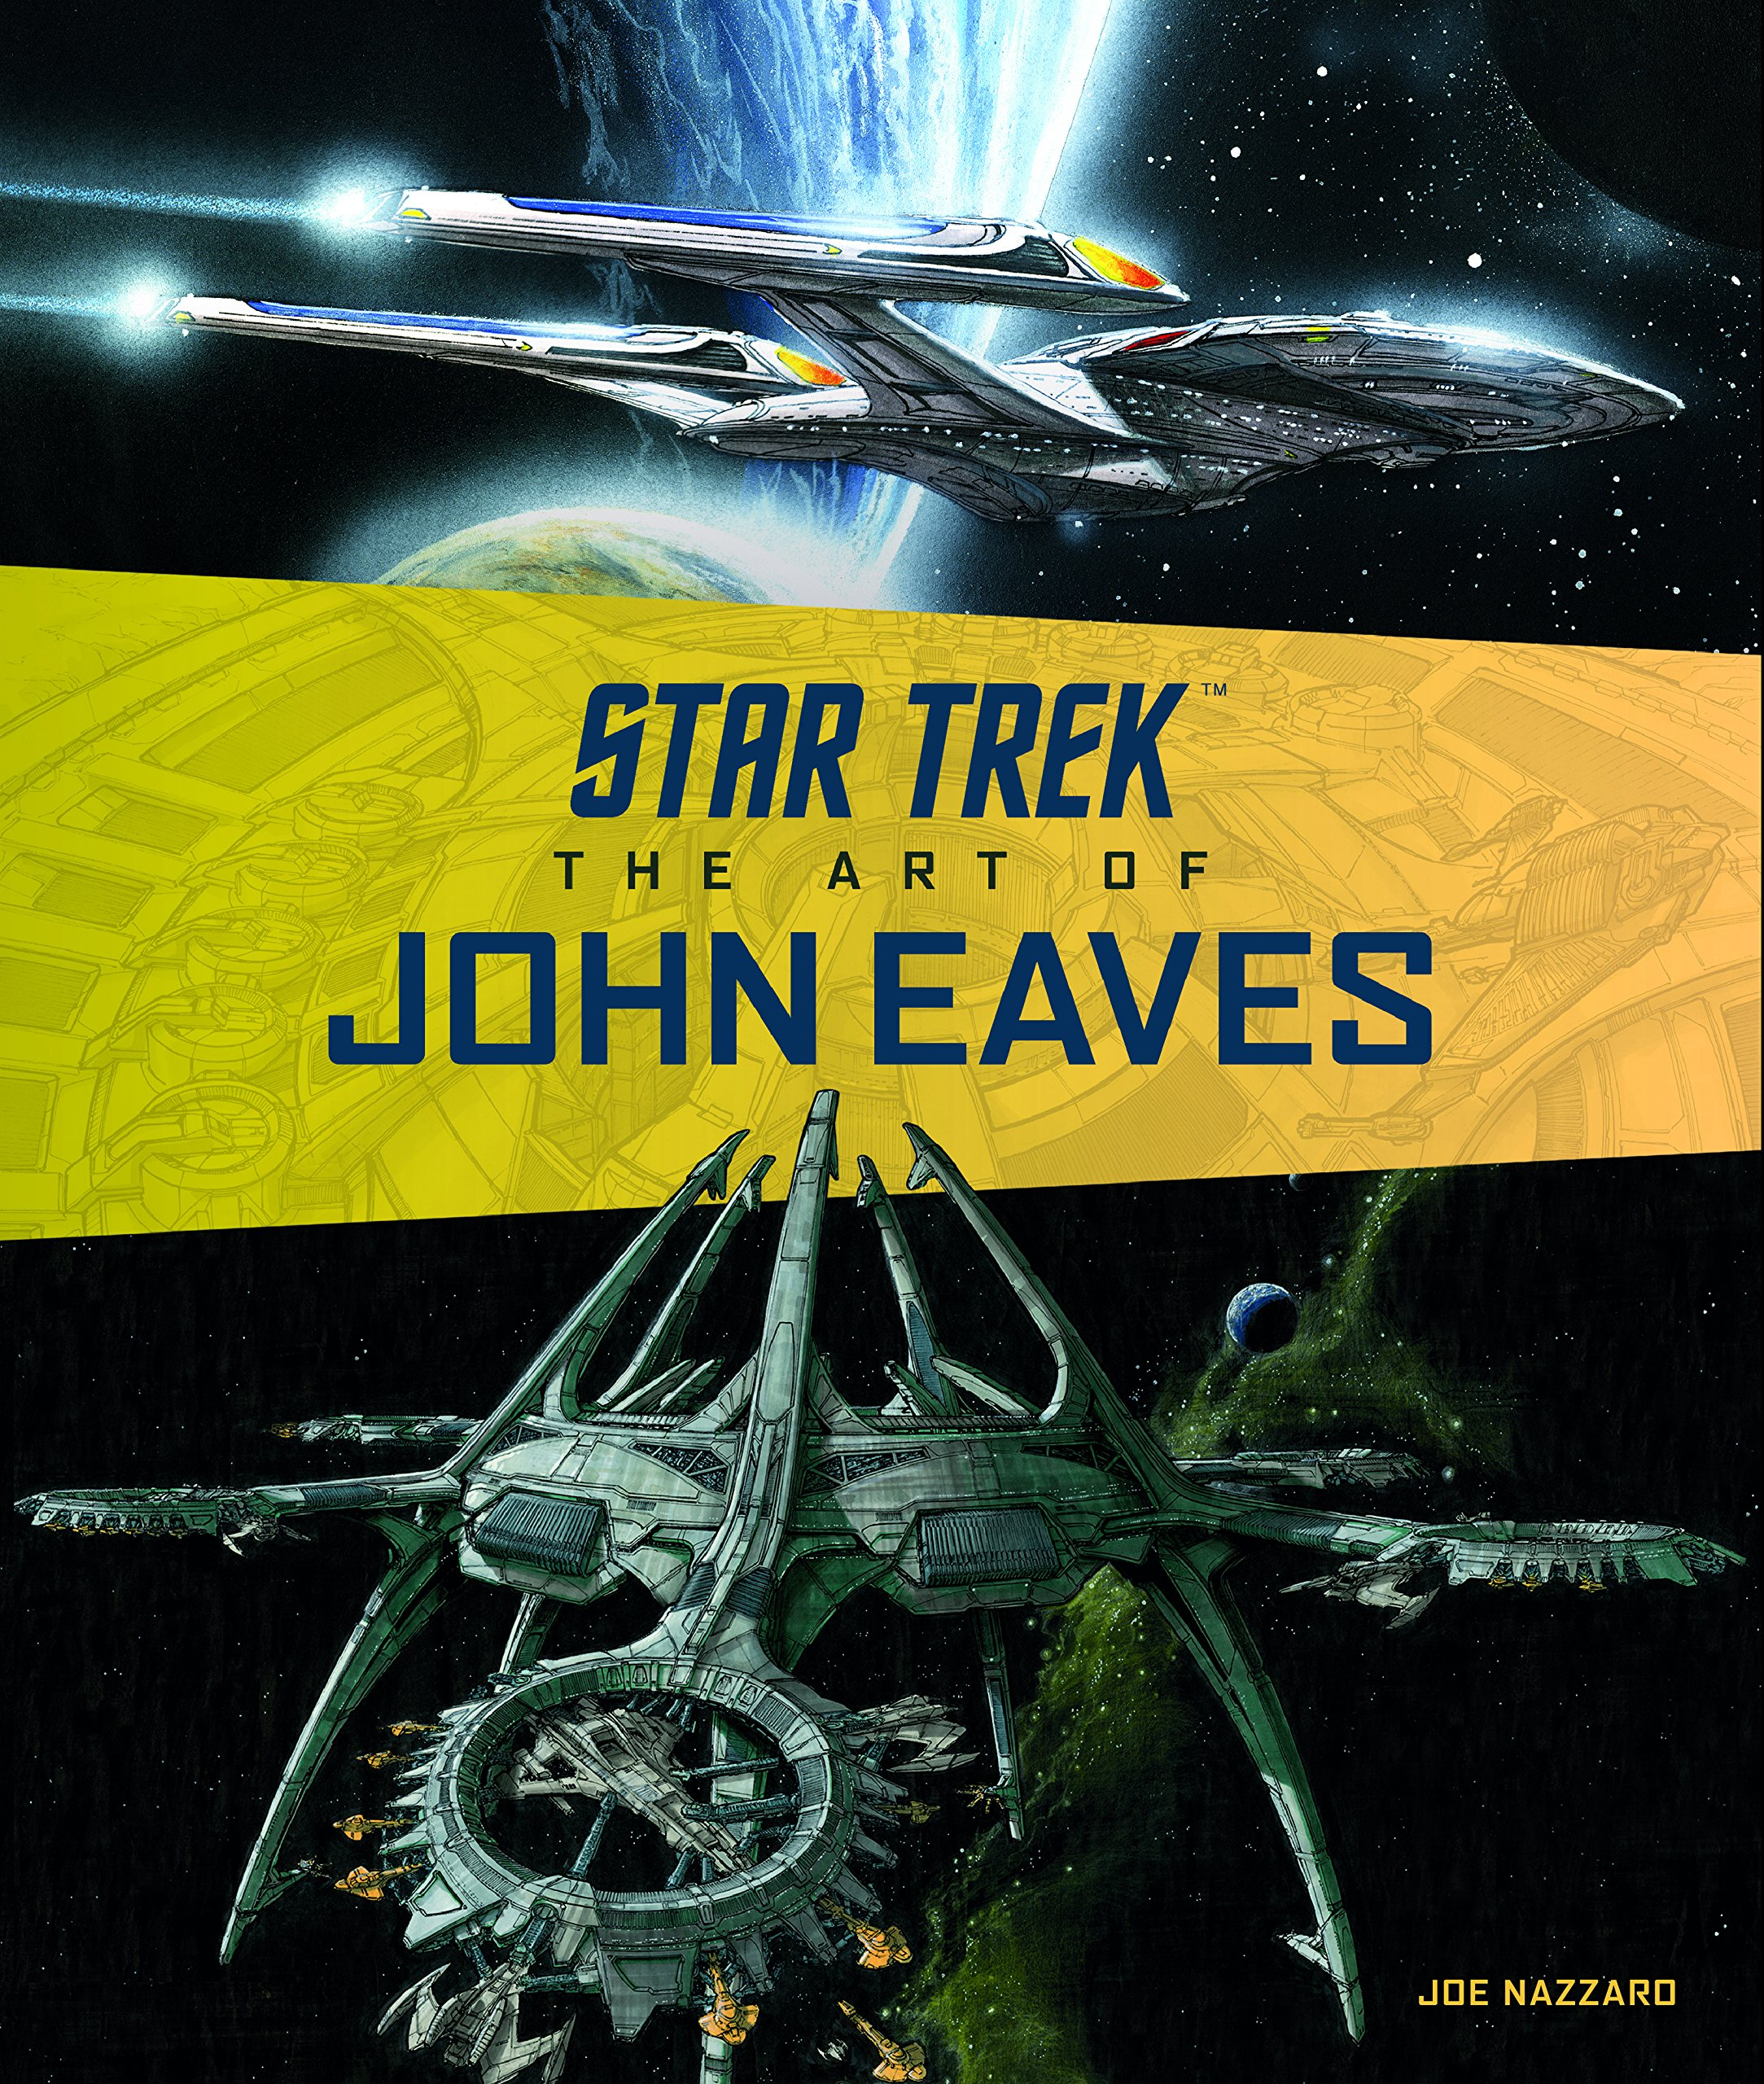 Star Trek: The Art of John Eaves Book Review